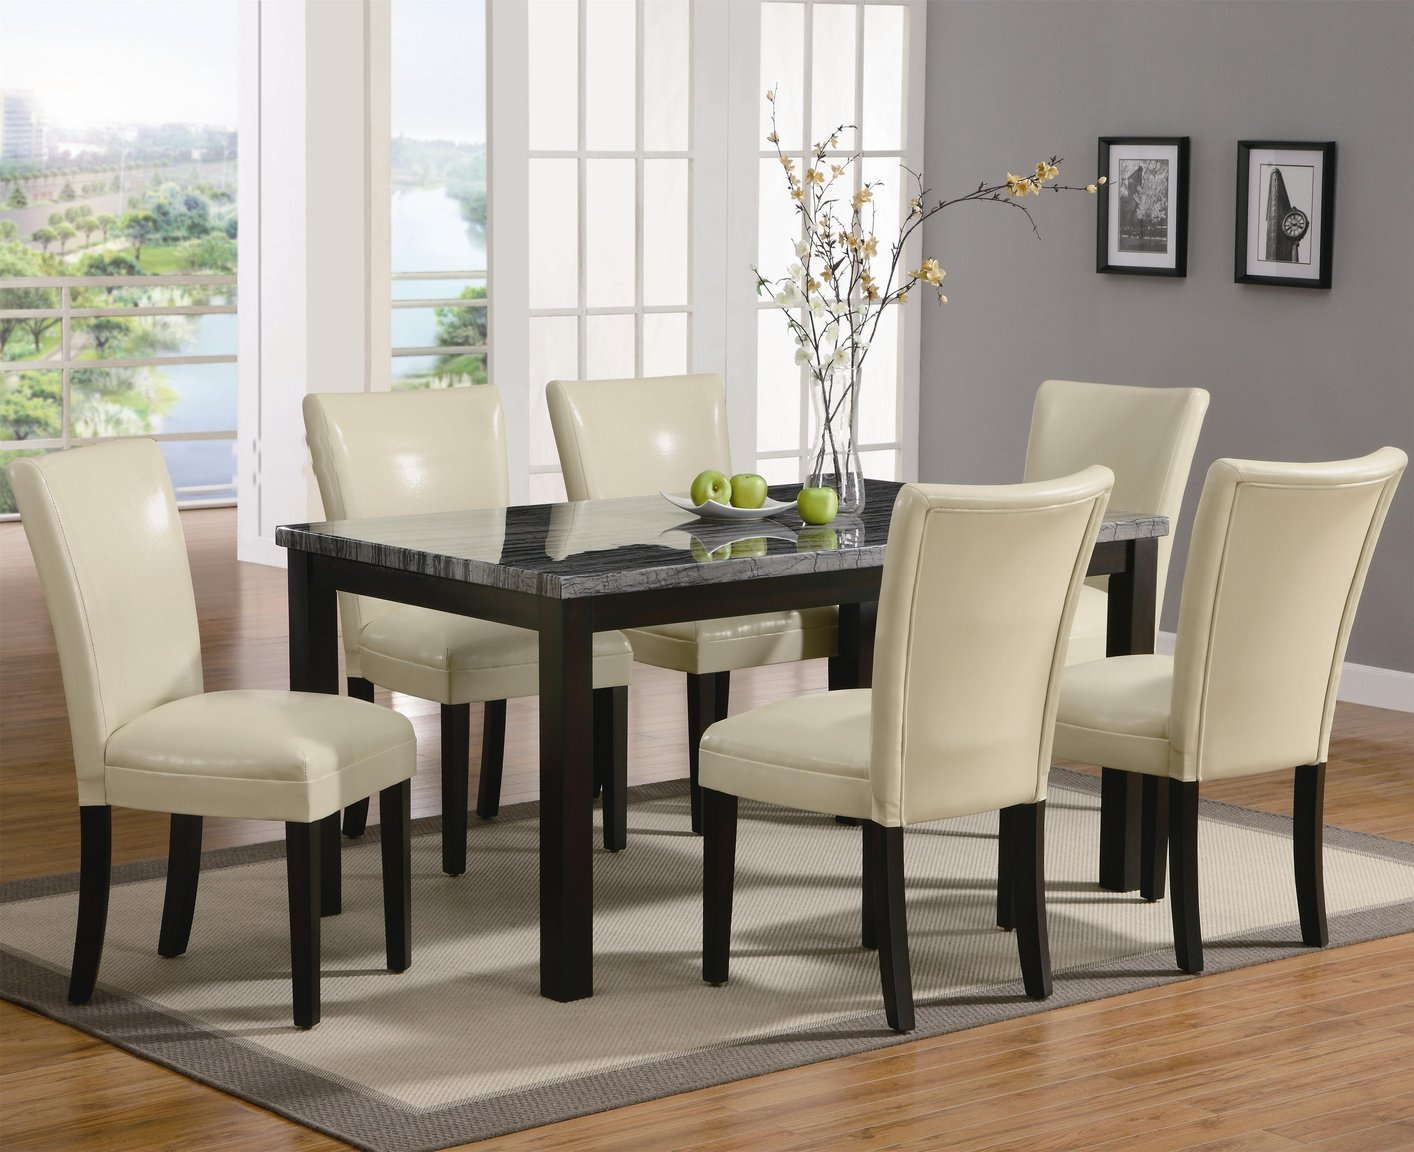 Black Leather Dining Room Chairs 1000 Images About Dining On Pinterest Side Chairs Dining Tables